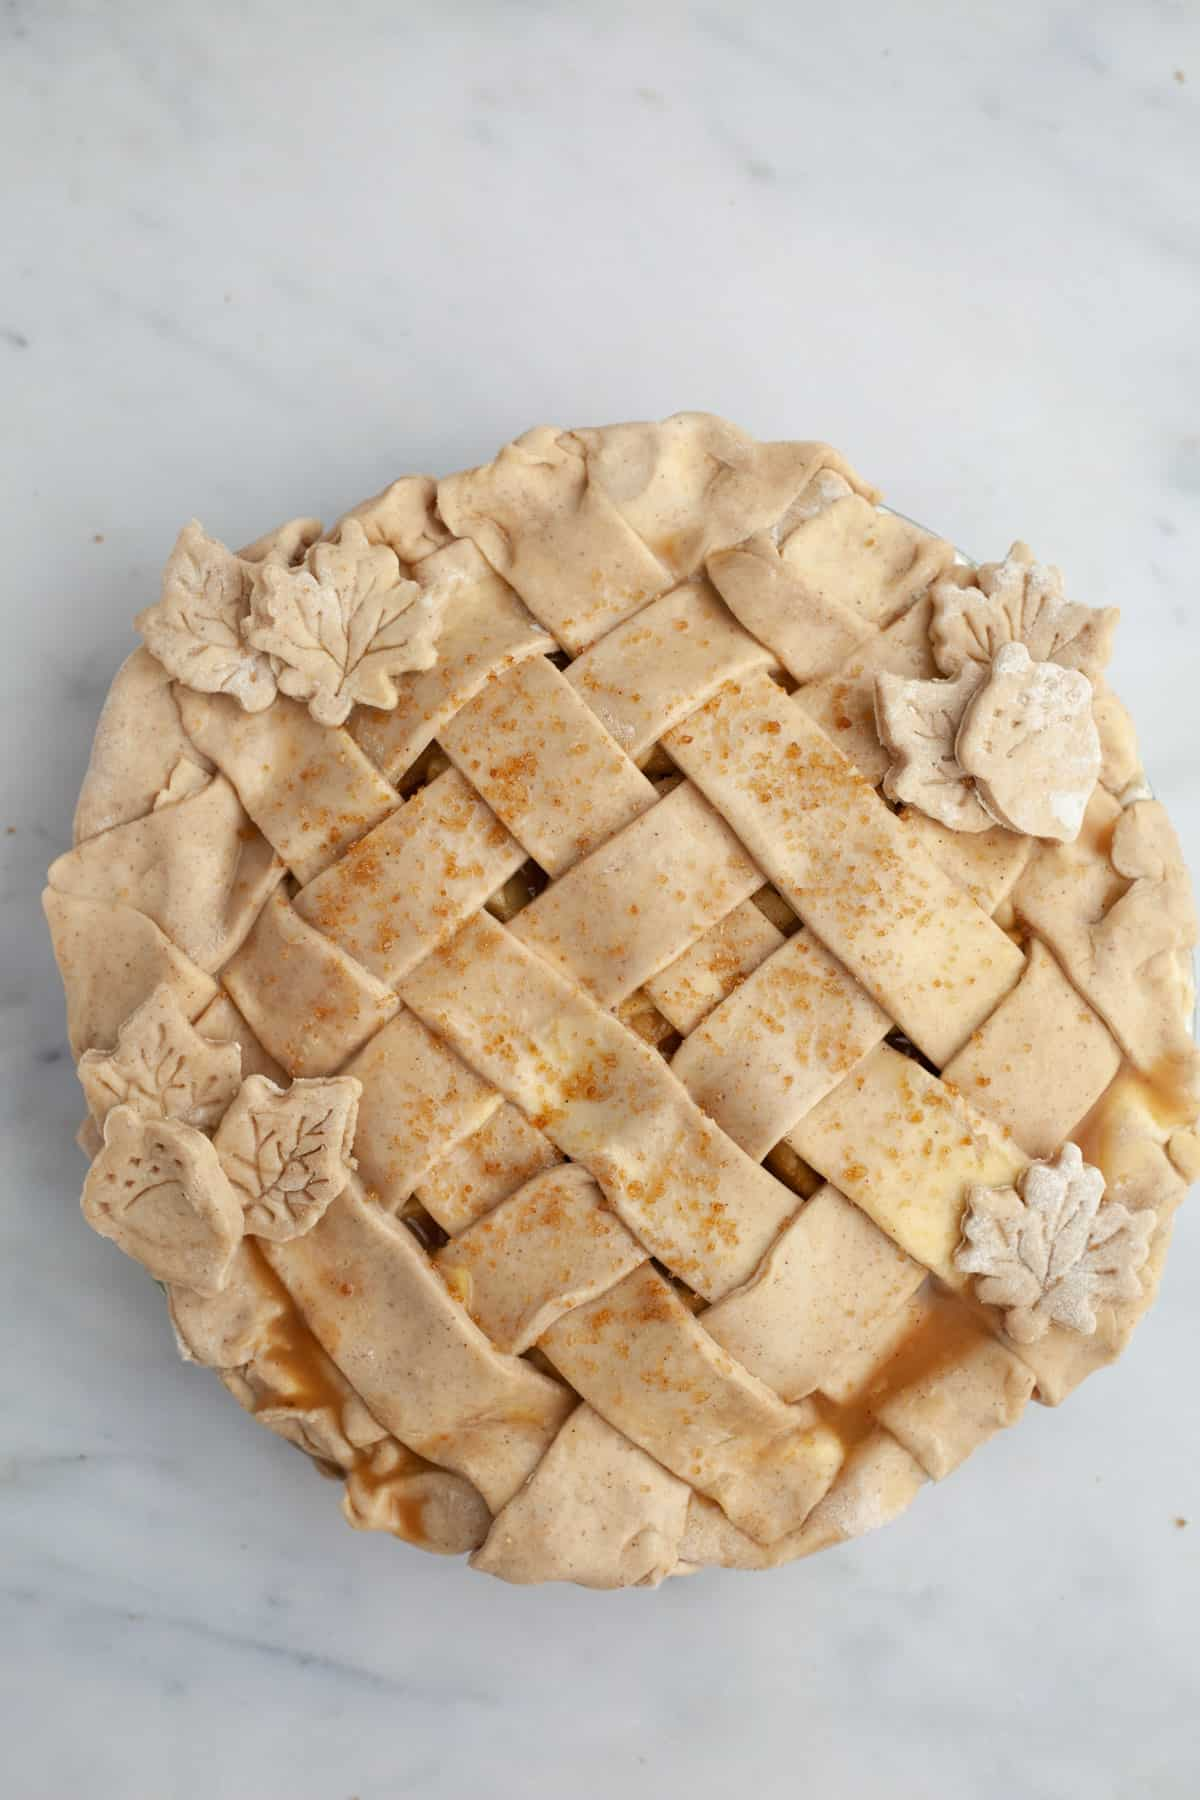 An unbaked lattice covered pie